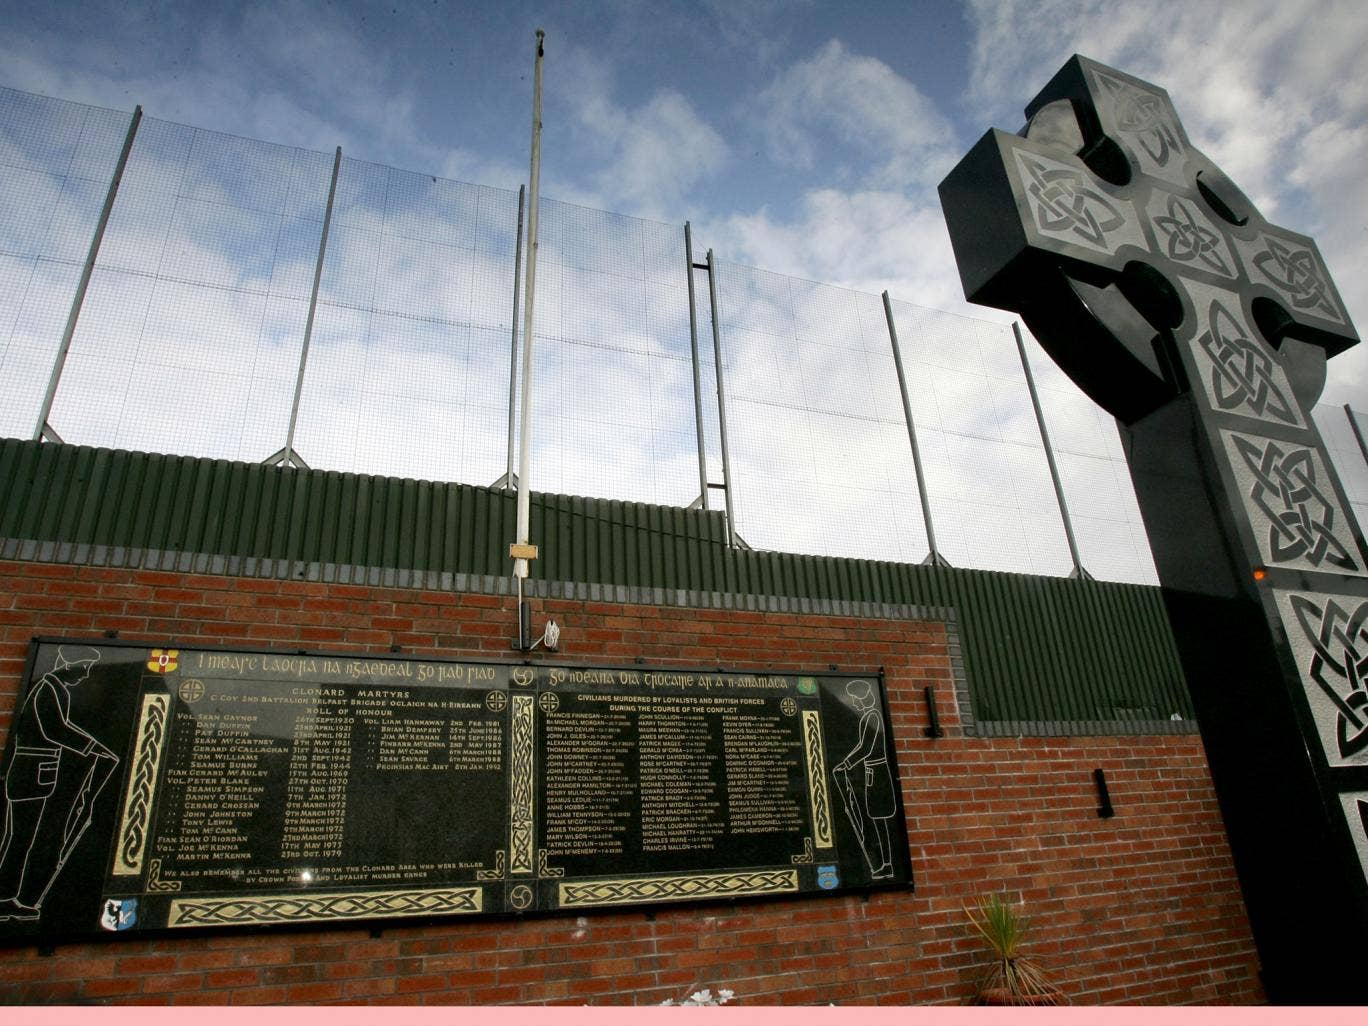 A memorial for IRA volunteers killed in 'the troubles' next to the Peace Line fence in Clonard republican area of West Belfast